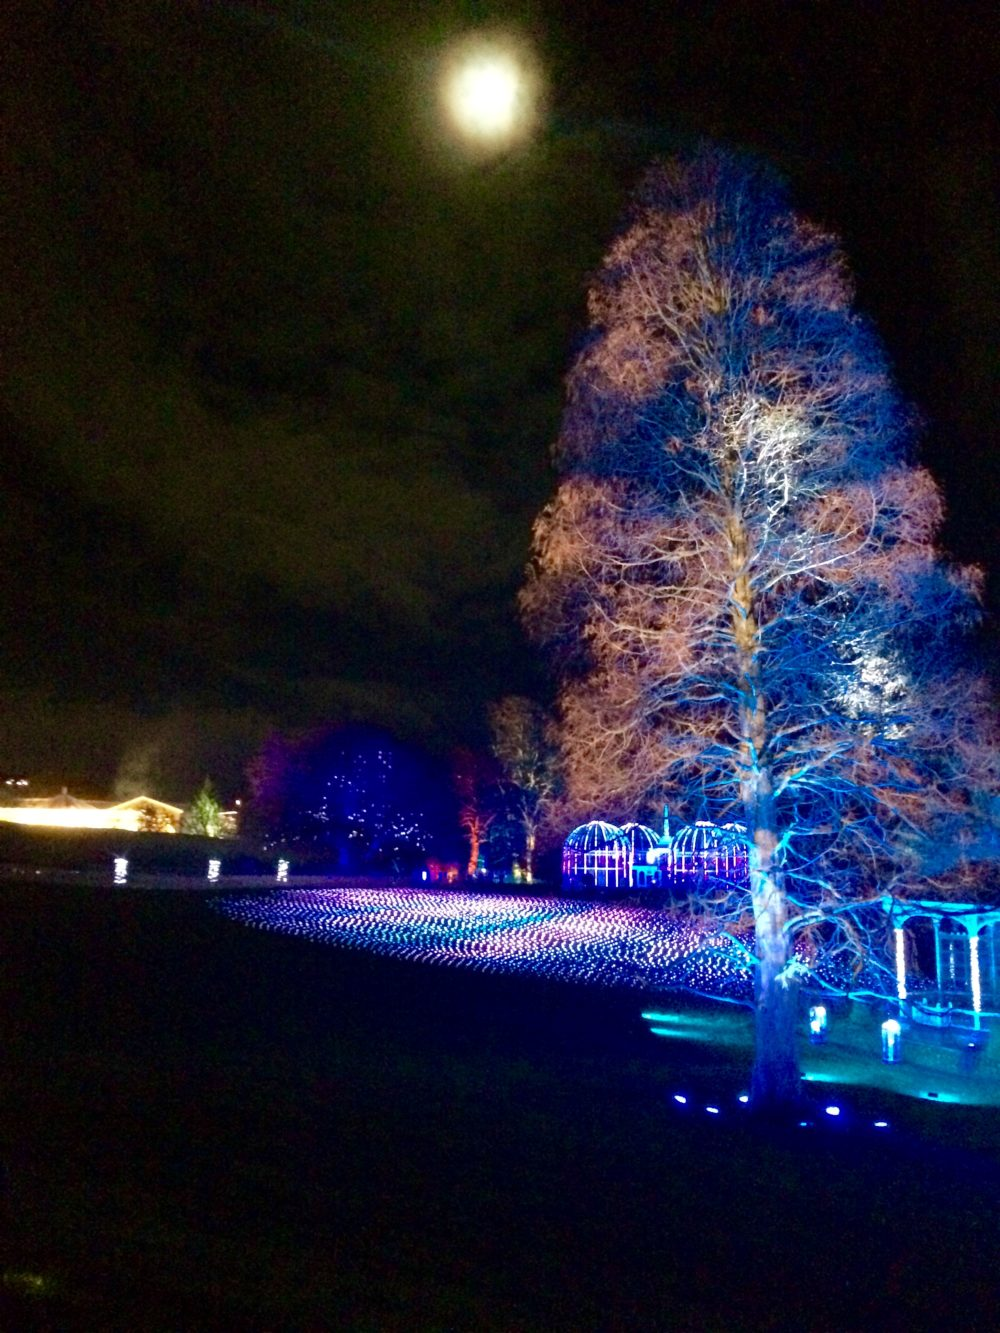 View of the Botanical Gardens lit up